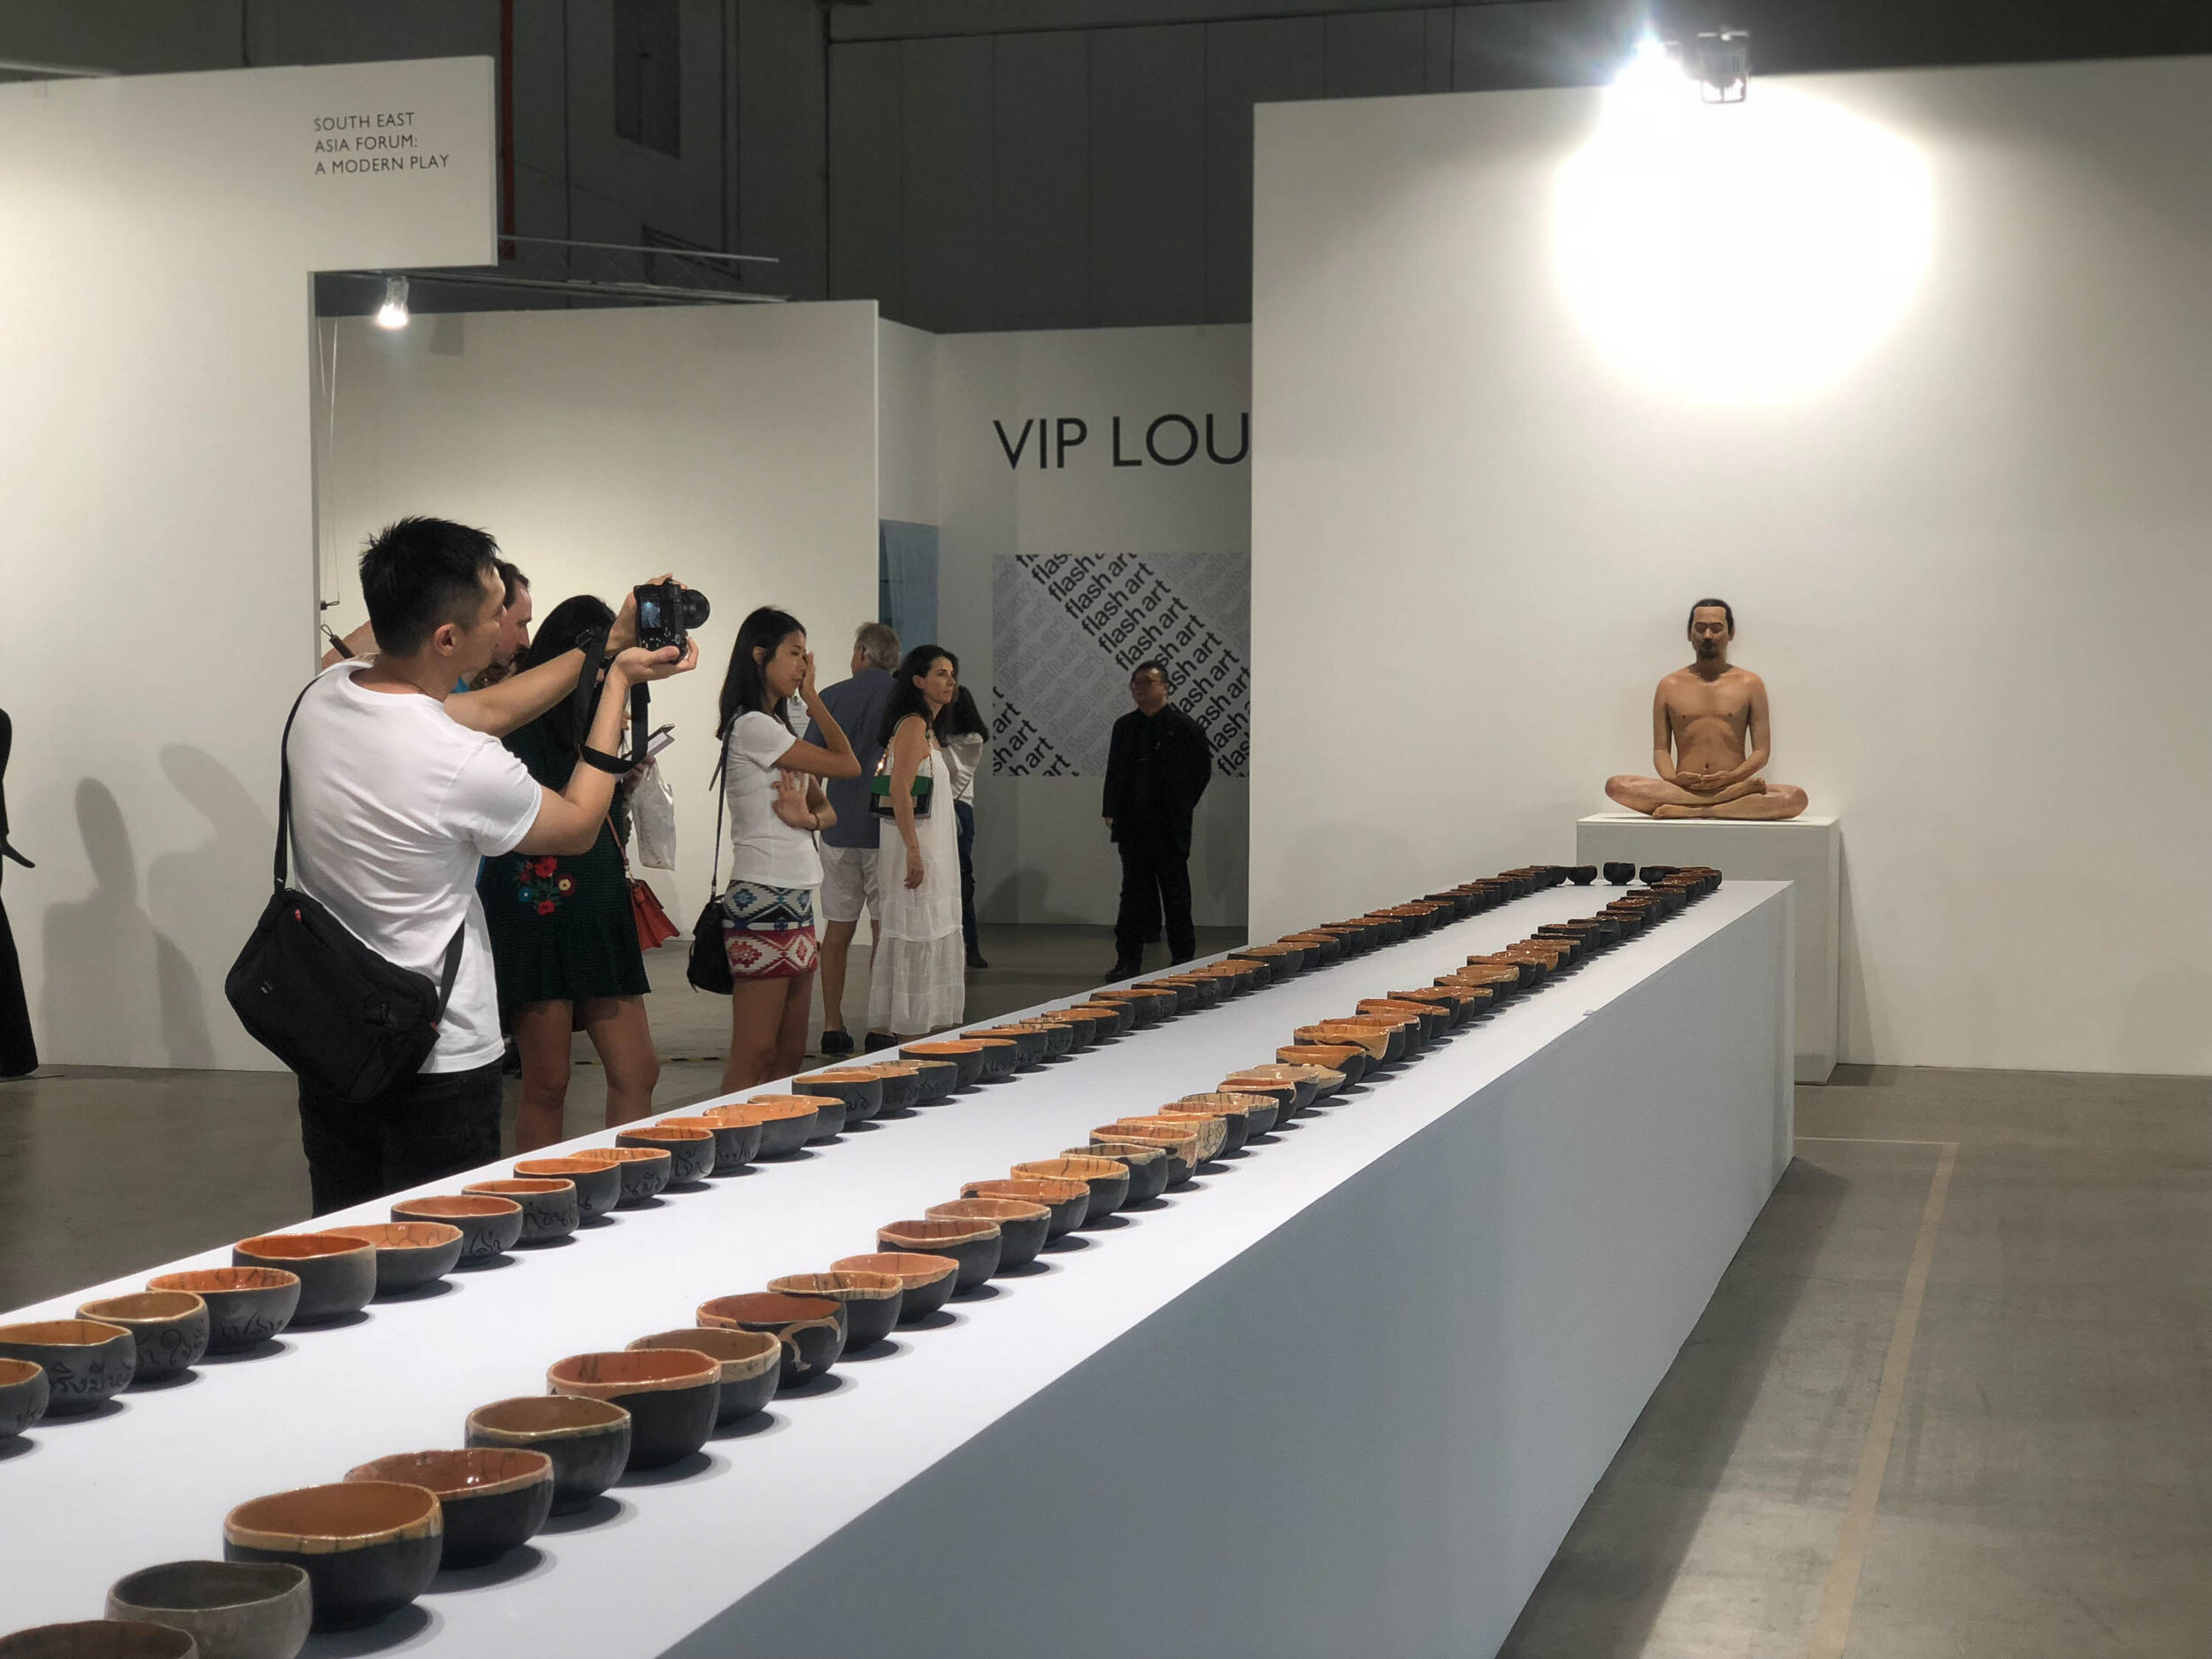 Kamin Lertchaiprasert, 'No Past No Present No Future', 2015, mixed media, dimensions variable. Presented at Art Stage 2018 (Project Stage). Photograph by Wannaporn Patanasatienkul.